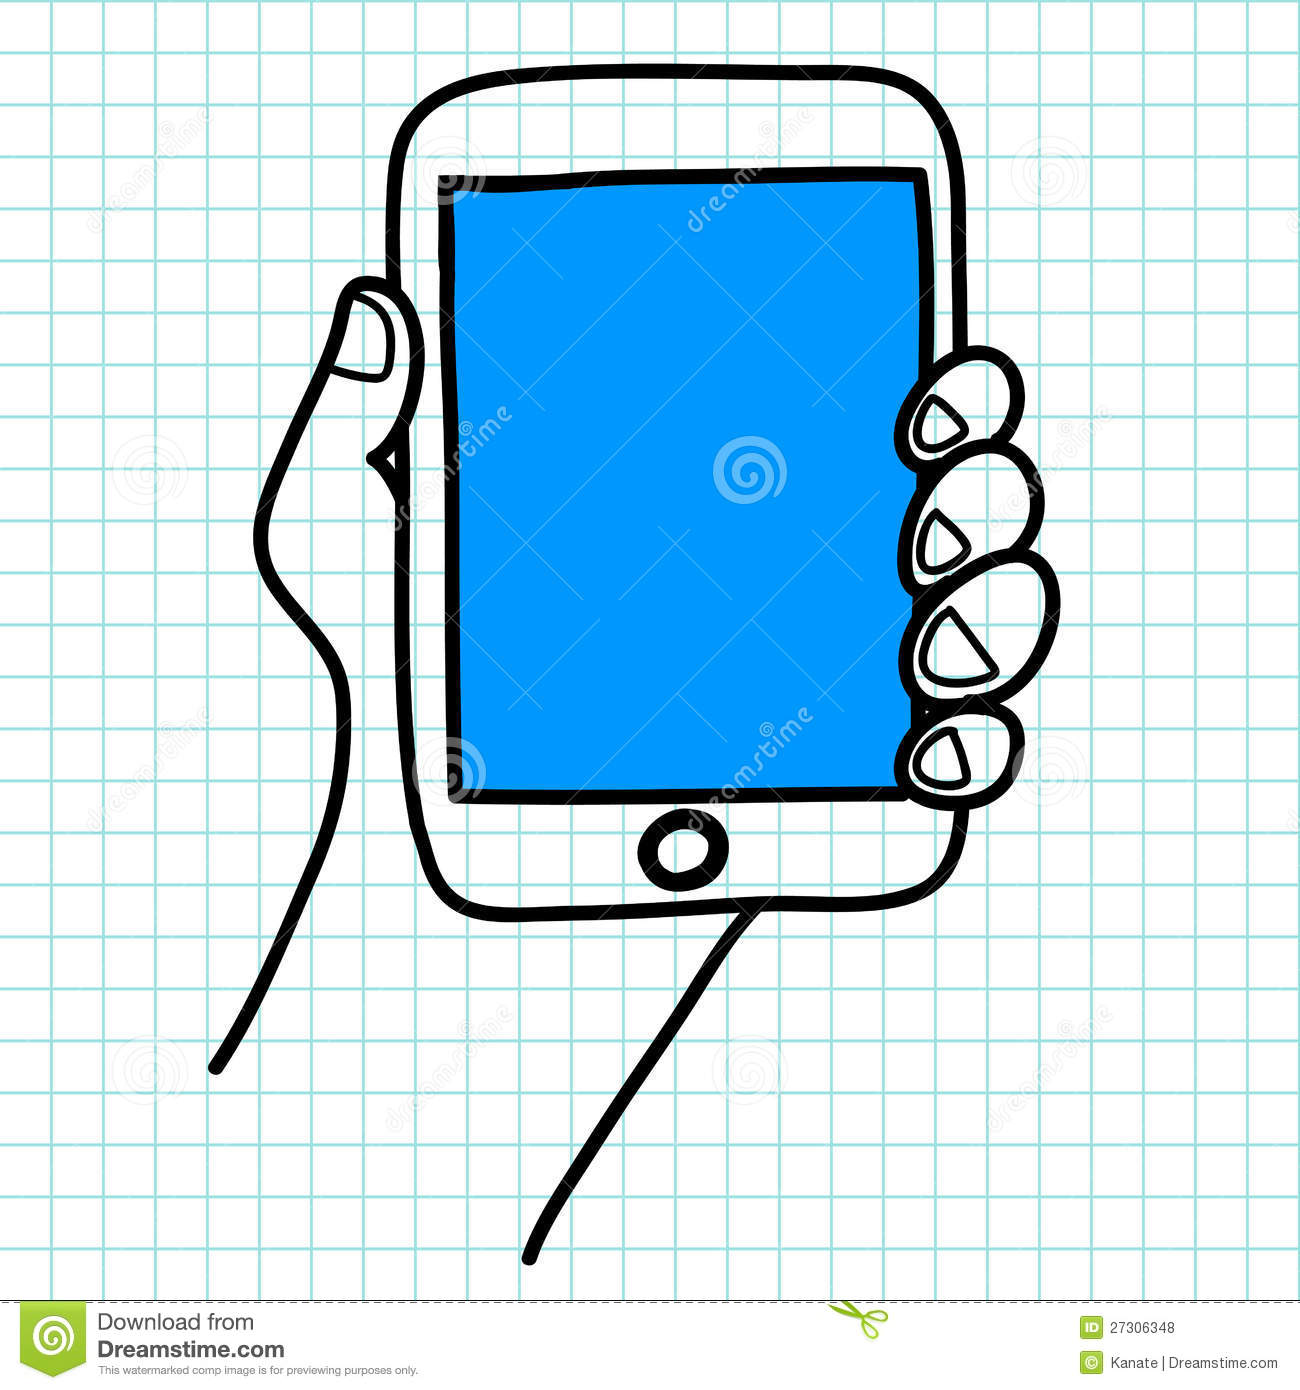 Drawing Lines With Tablet : Hand holding a tablet cartoon royalty free stock photos